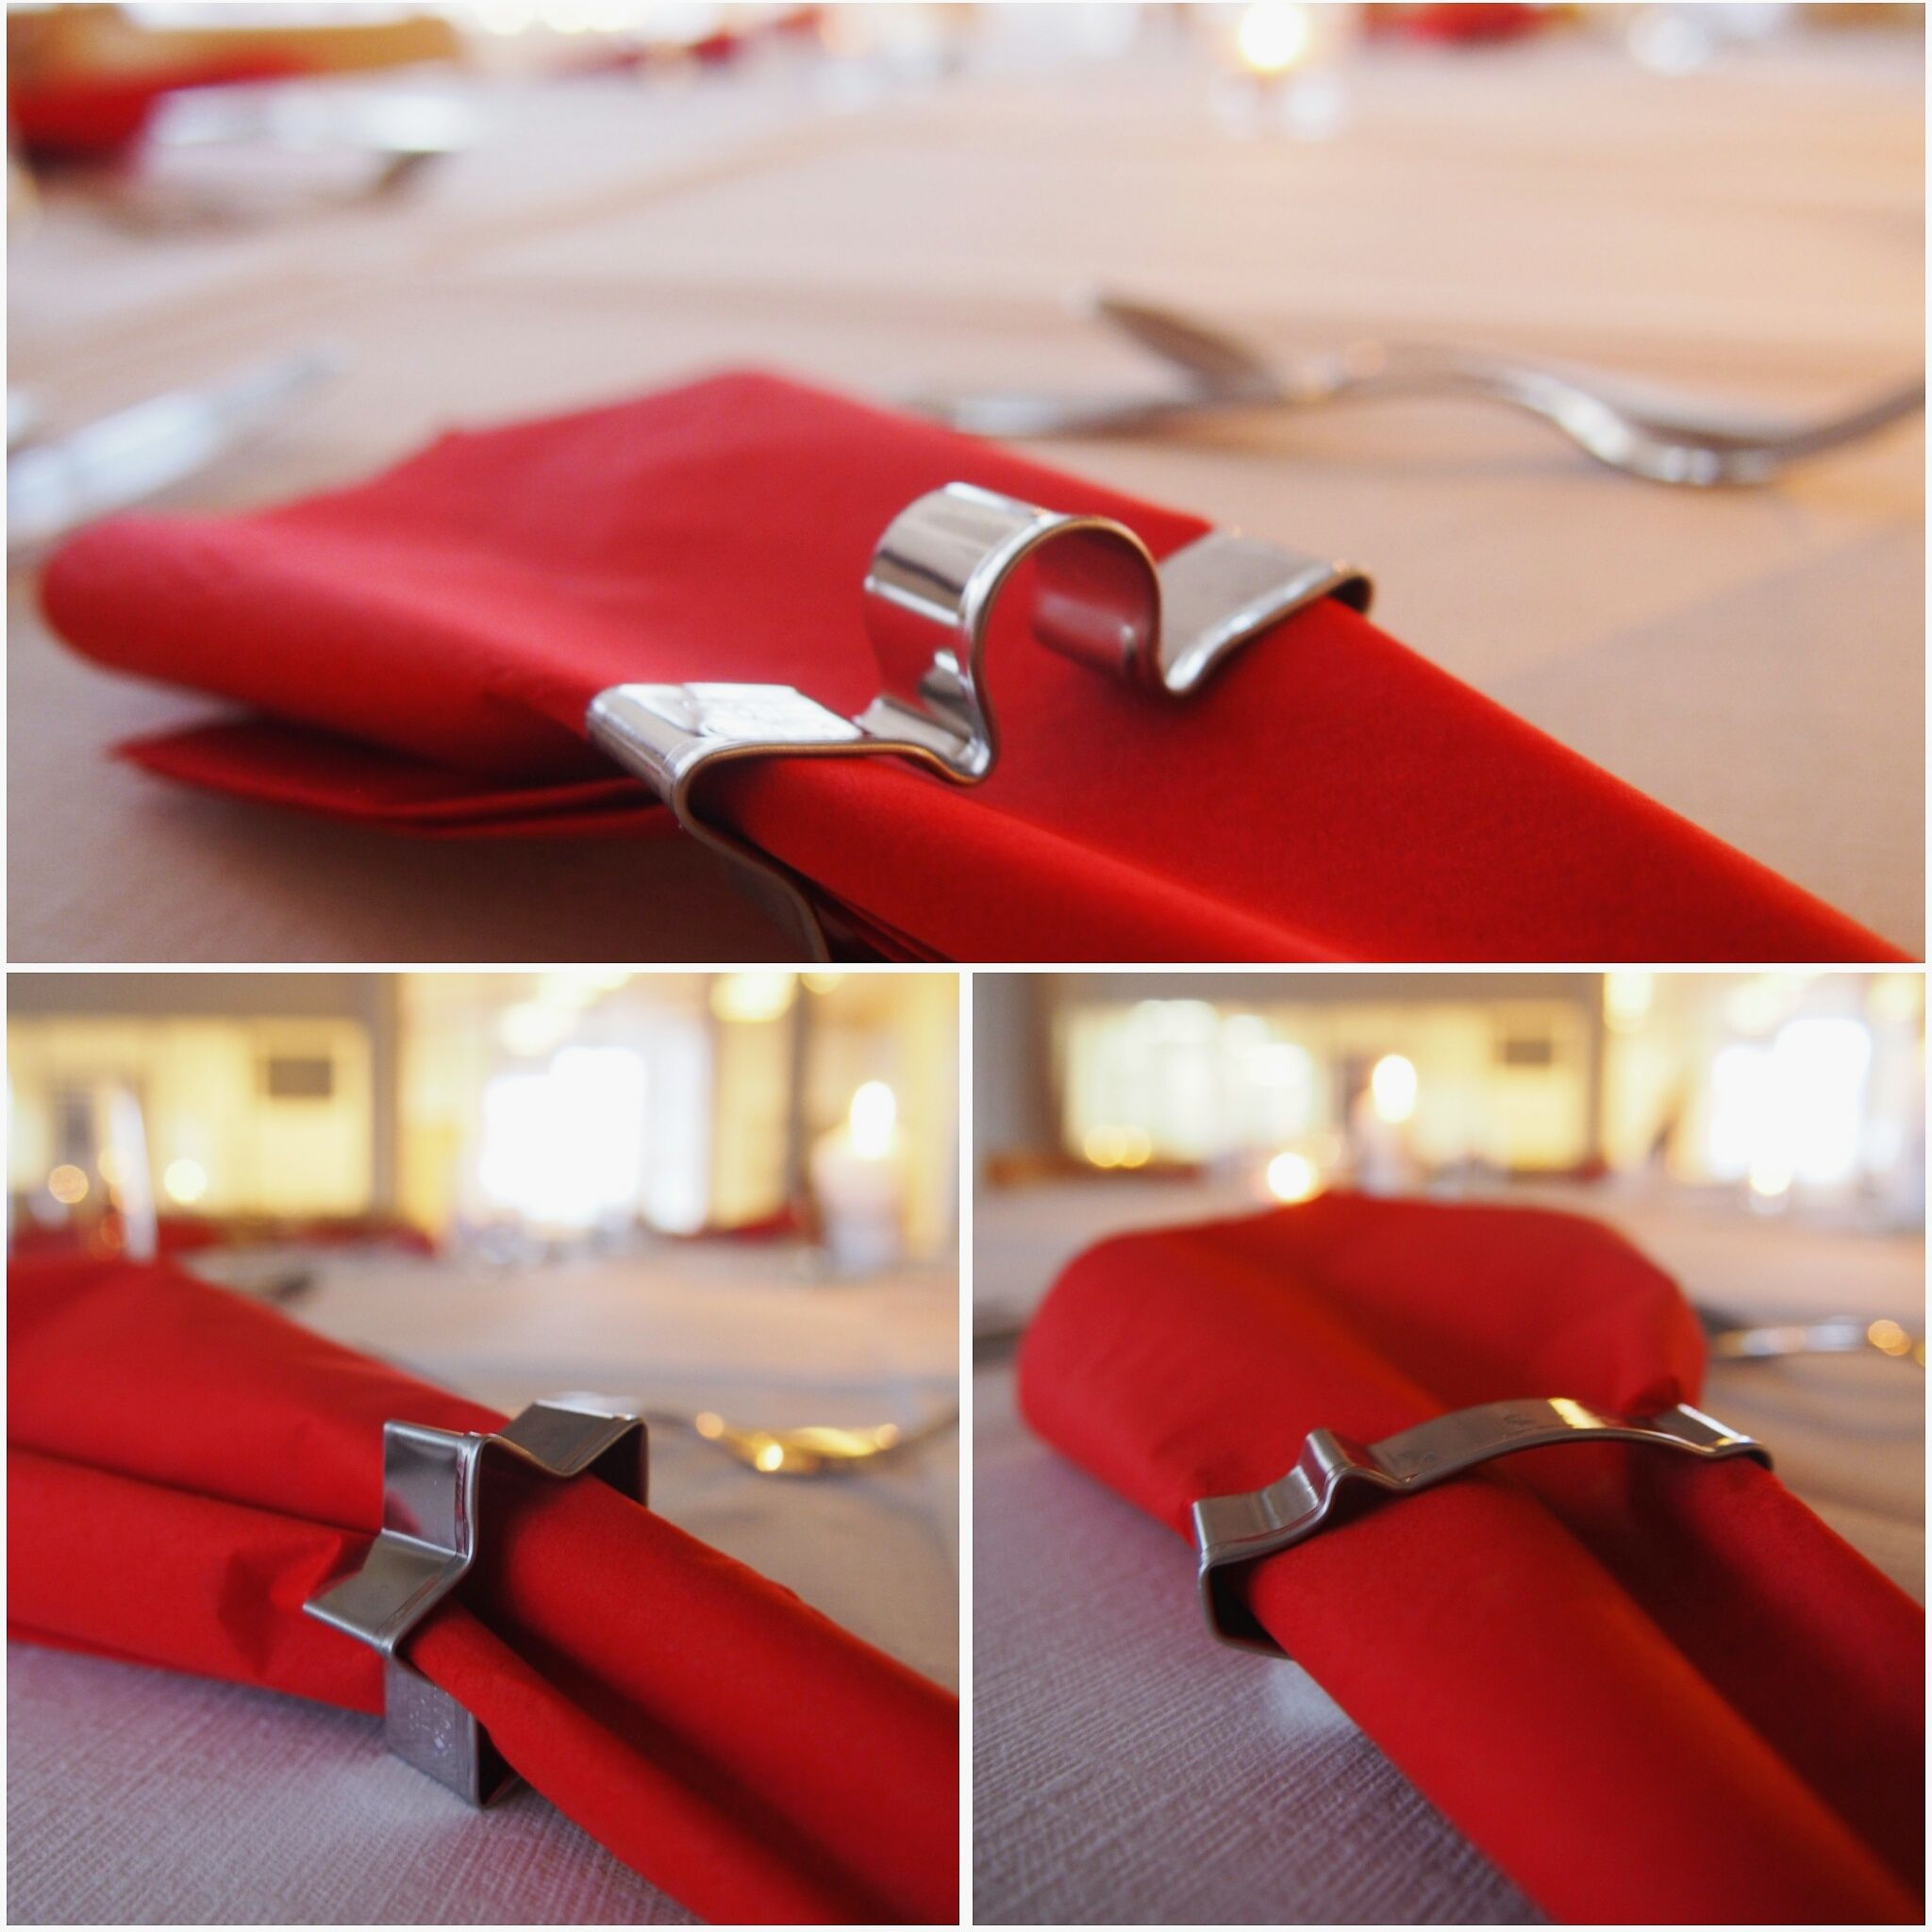 Orthex cookie cutters as napkin holders